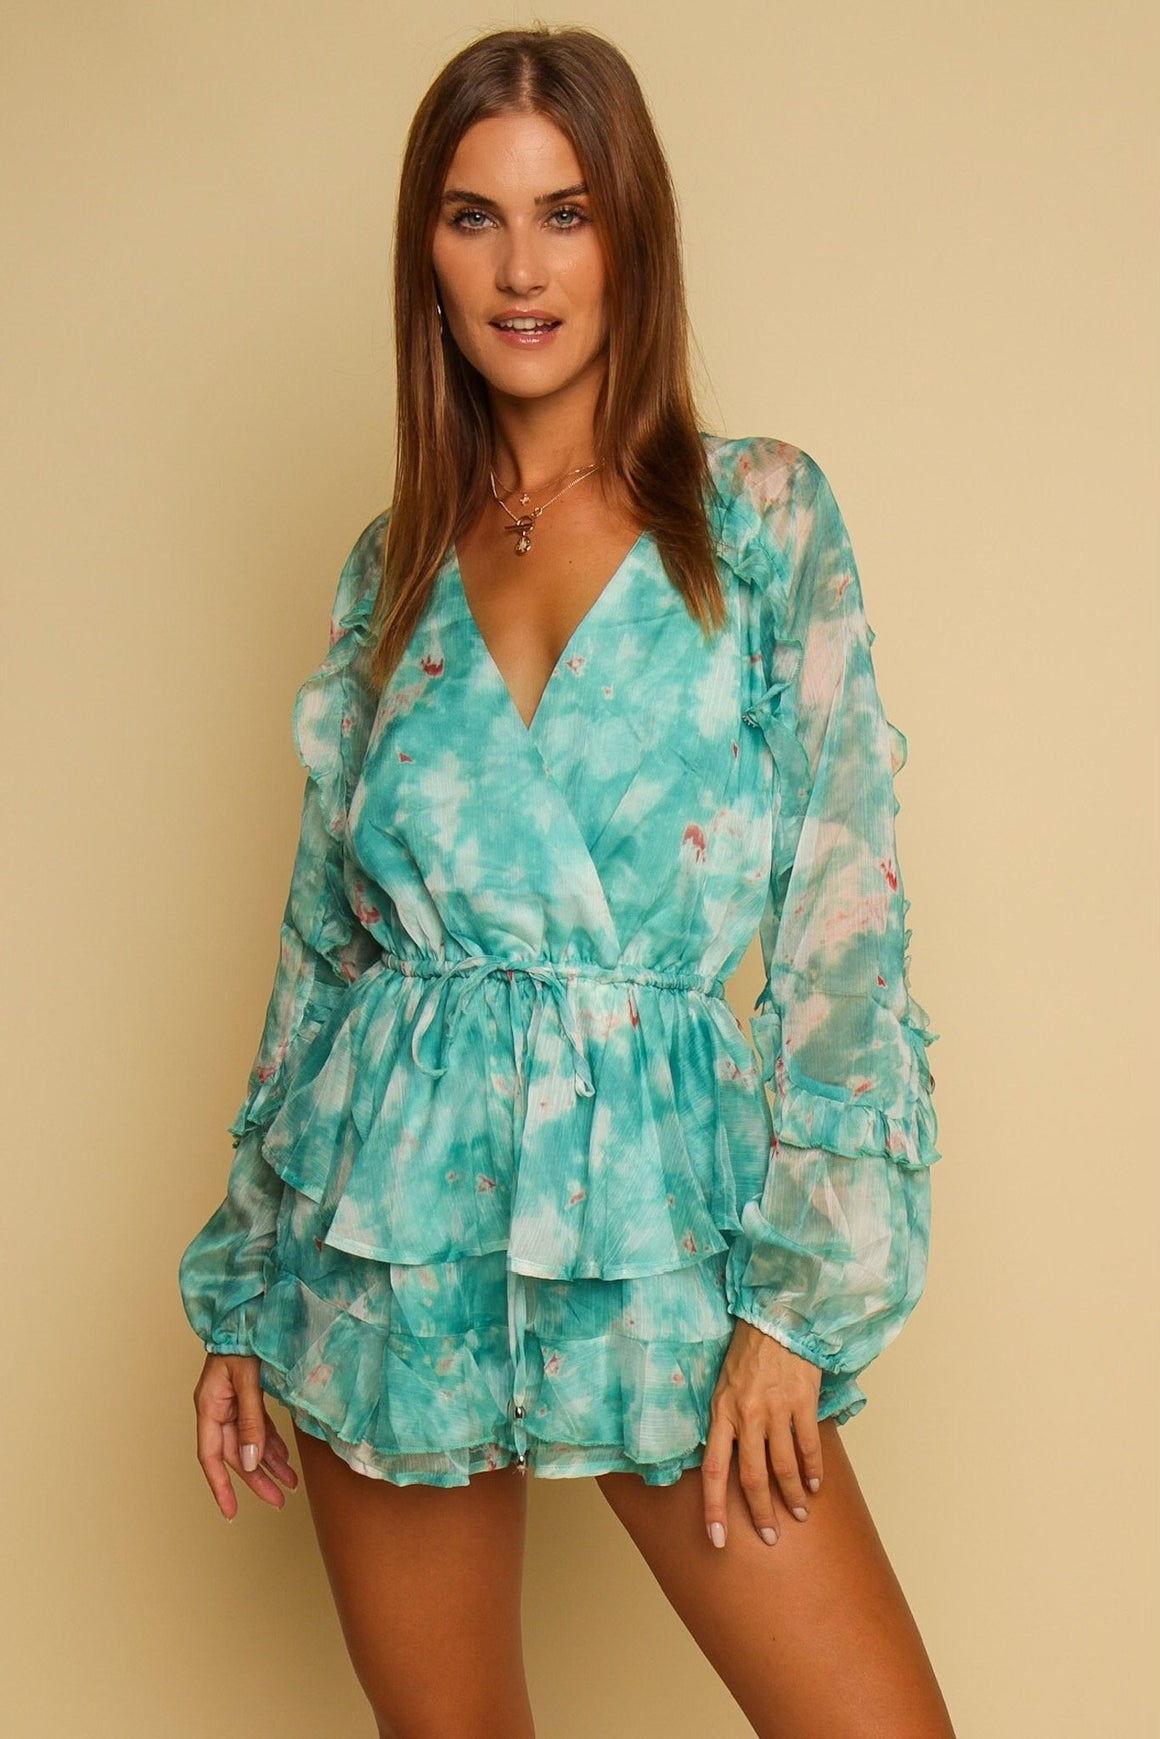 Lost In The Moment Playsuit Turquoise